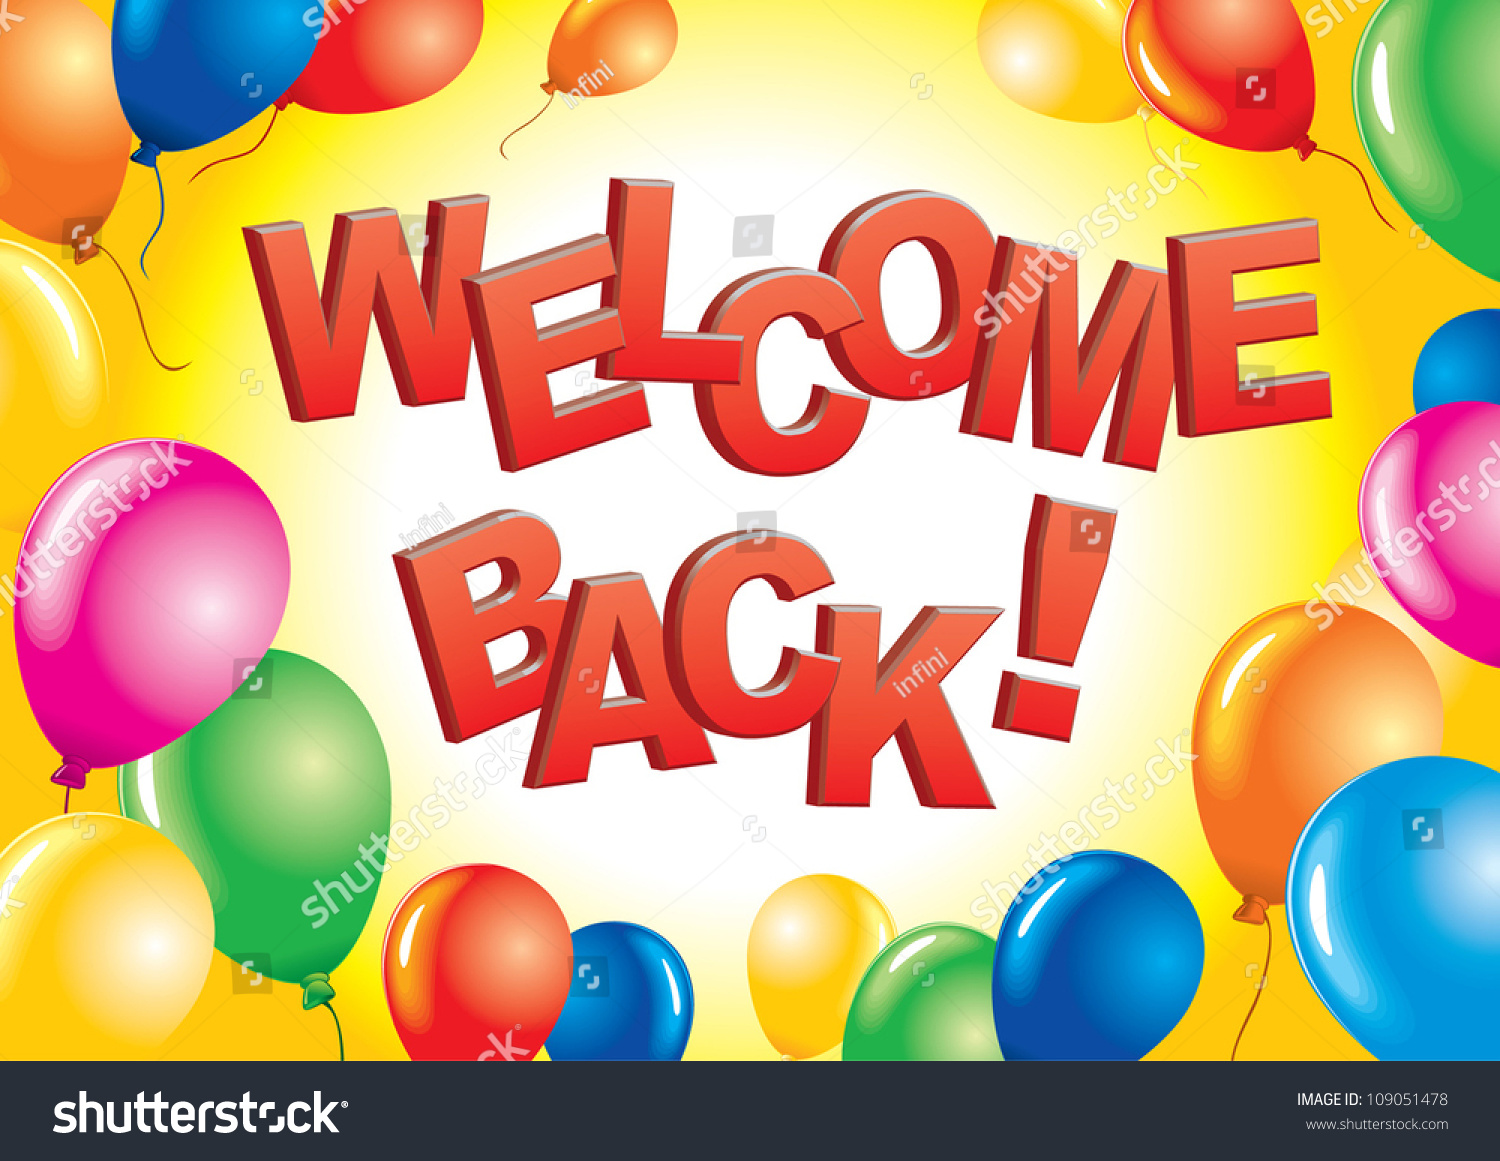 stock-vector-welcome-back-sign-109051478.jpg